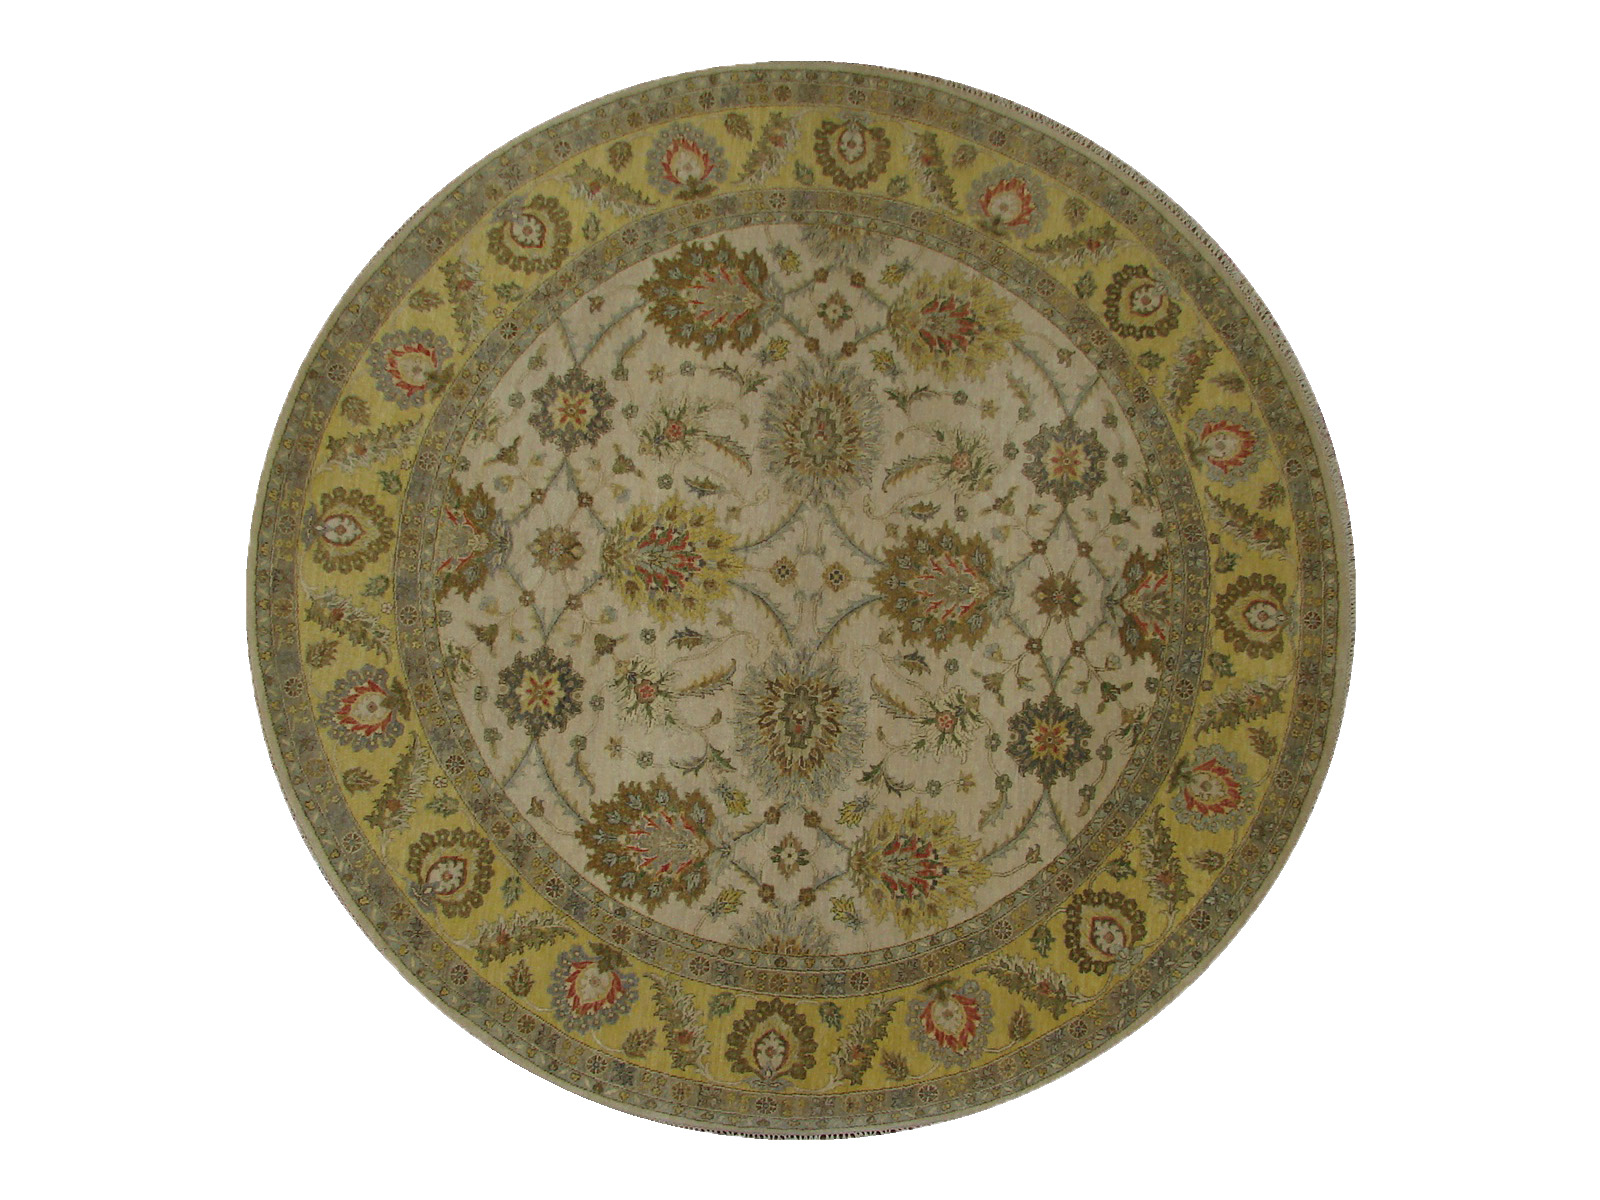 8 Round & Square Traditional Hand Knotted Wool Area Rug - MR21111